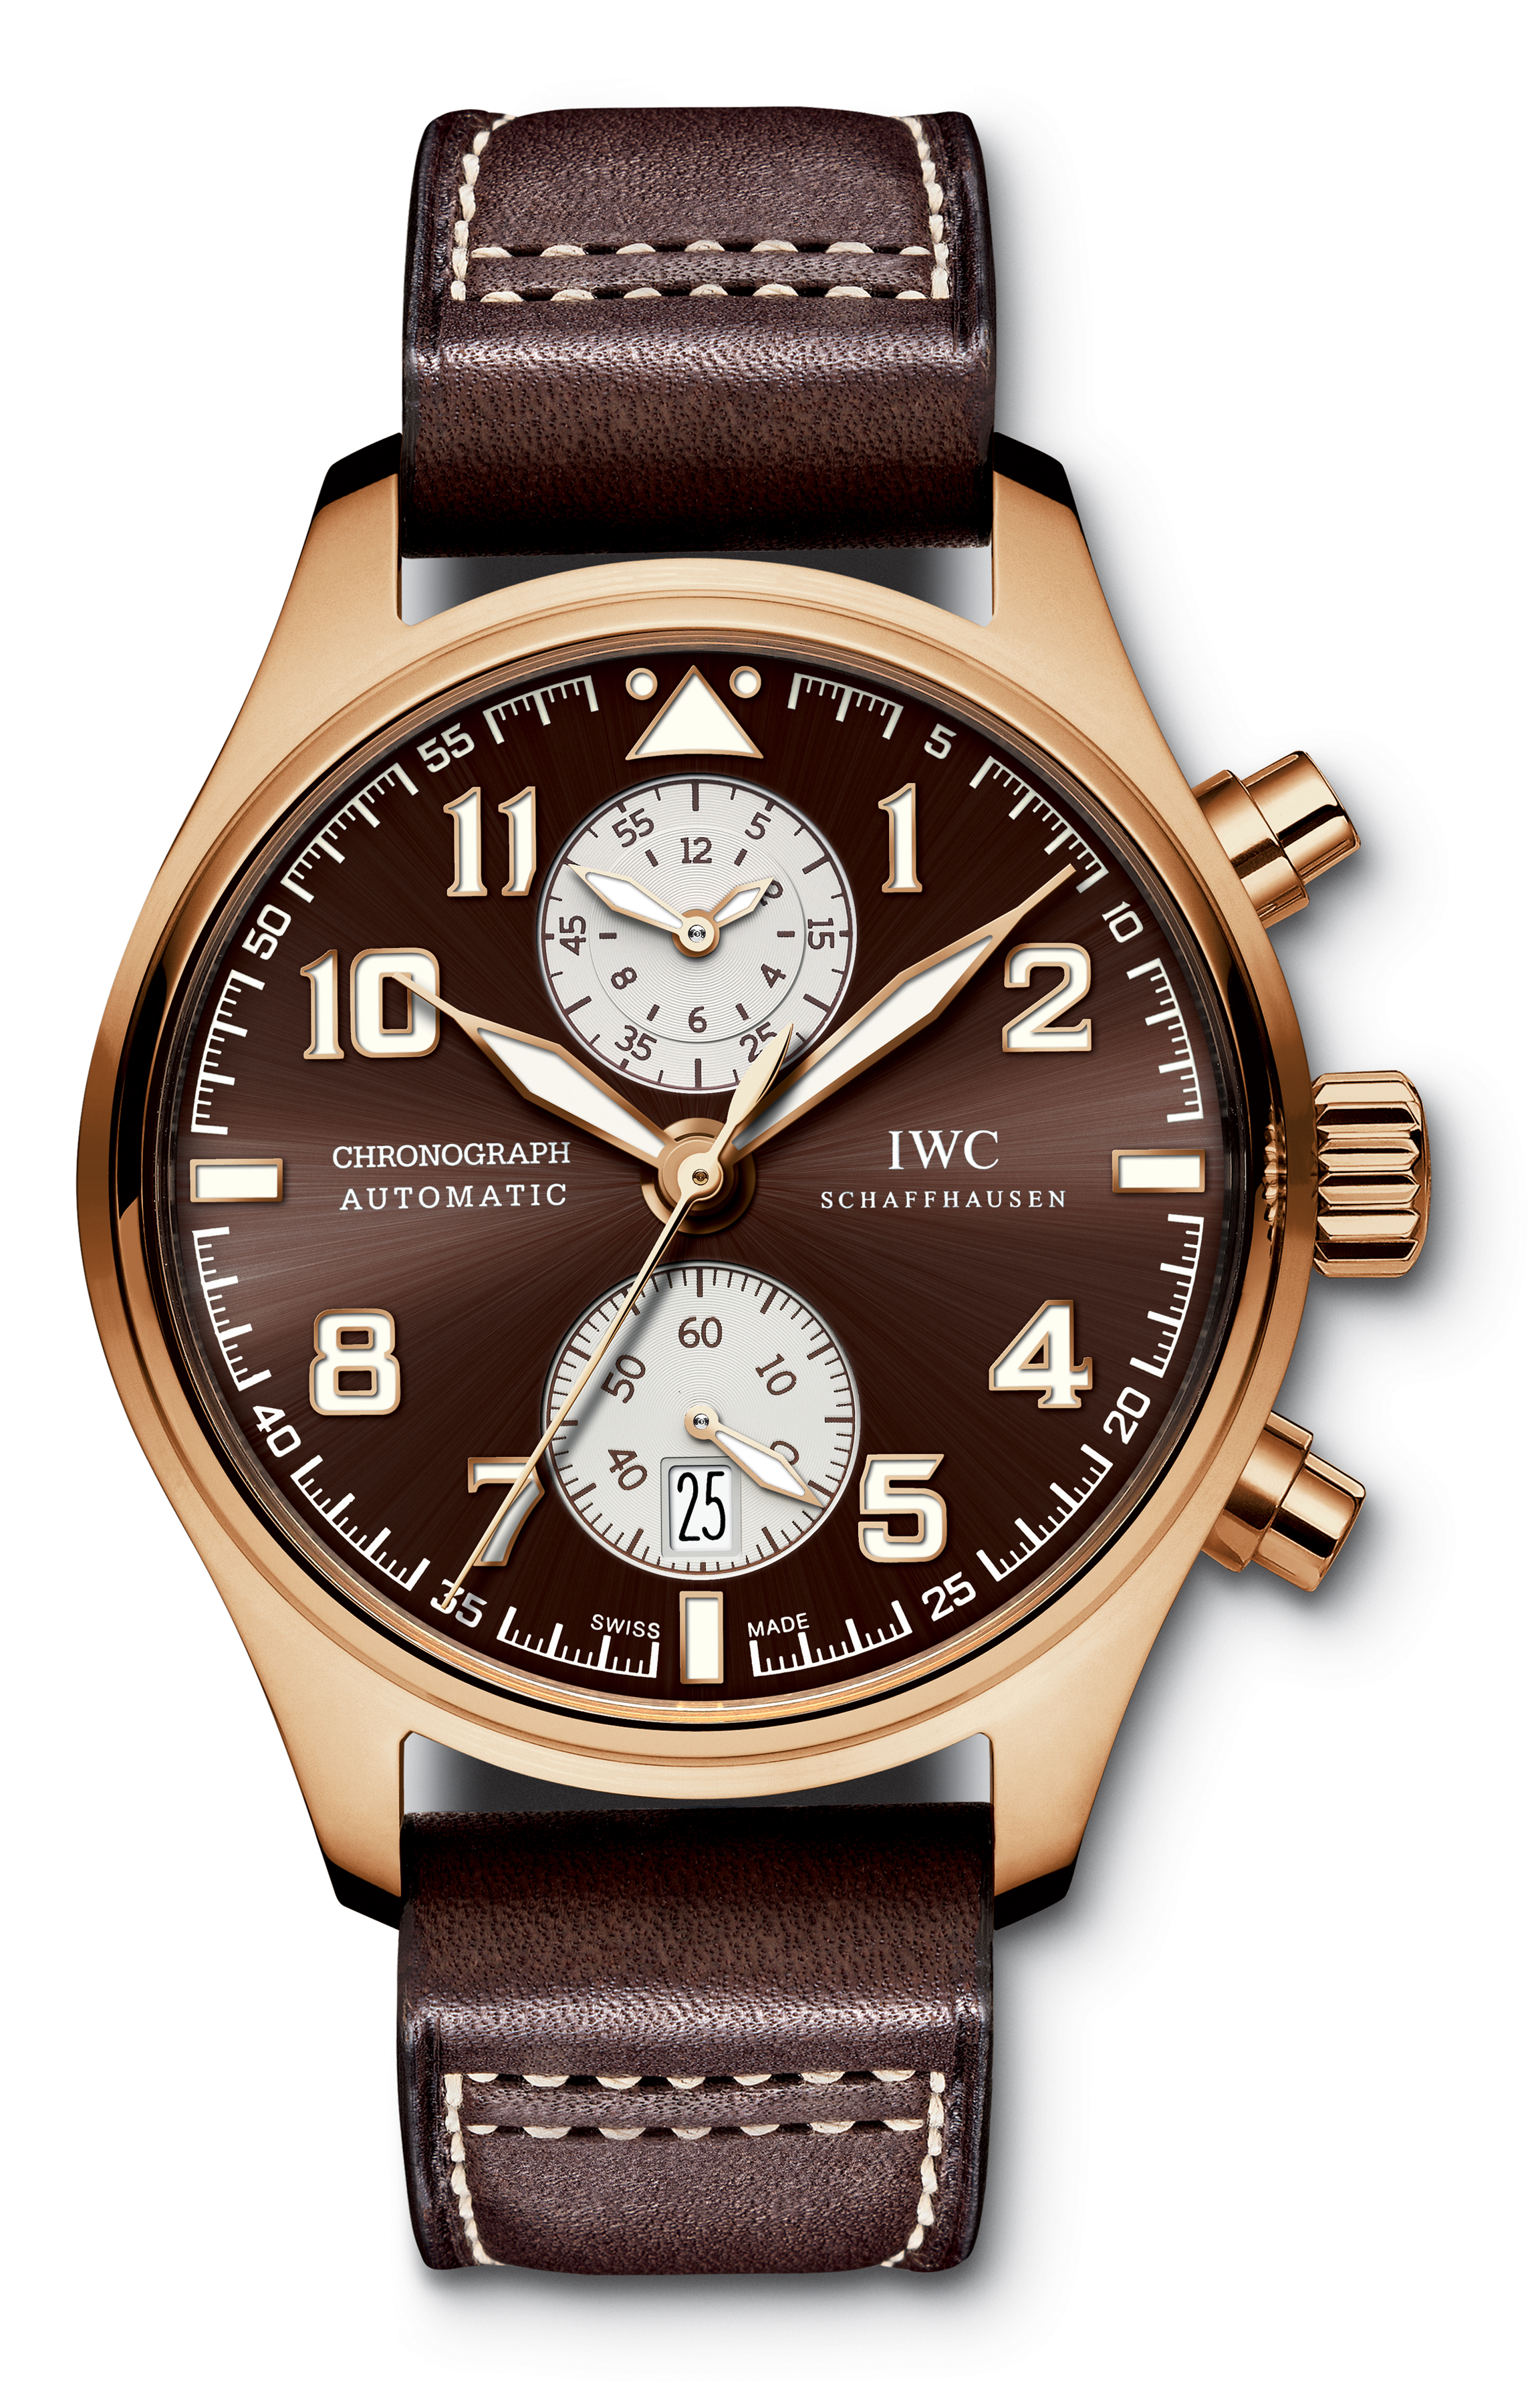 sport s watch introducing iwc watches mark the laureus edition articles pilots xviii pilot foundation good davinci ixlib for rails